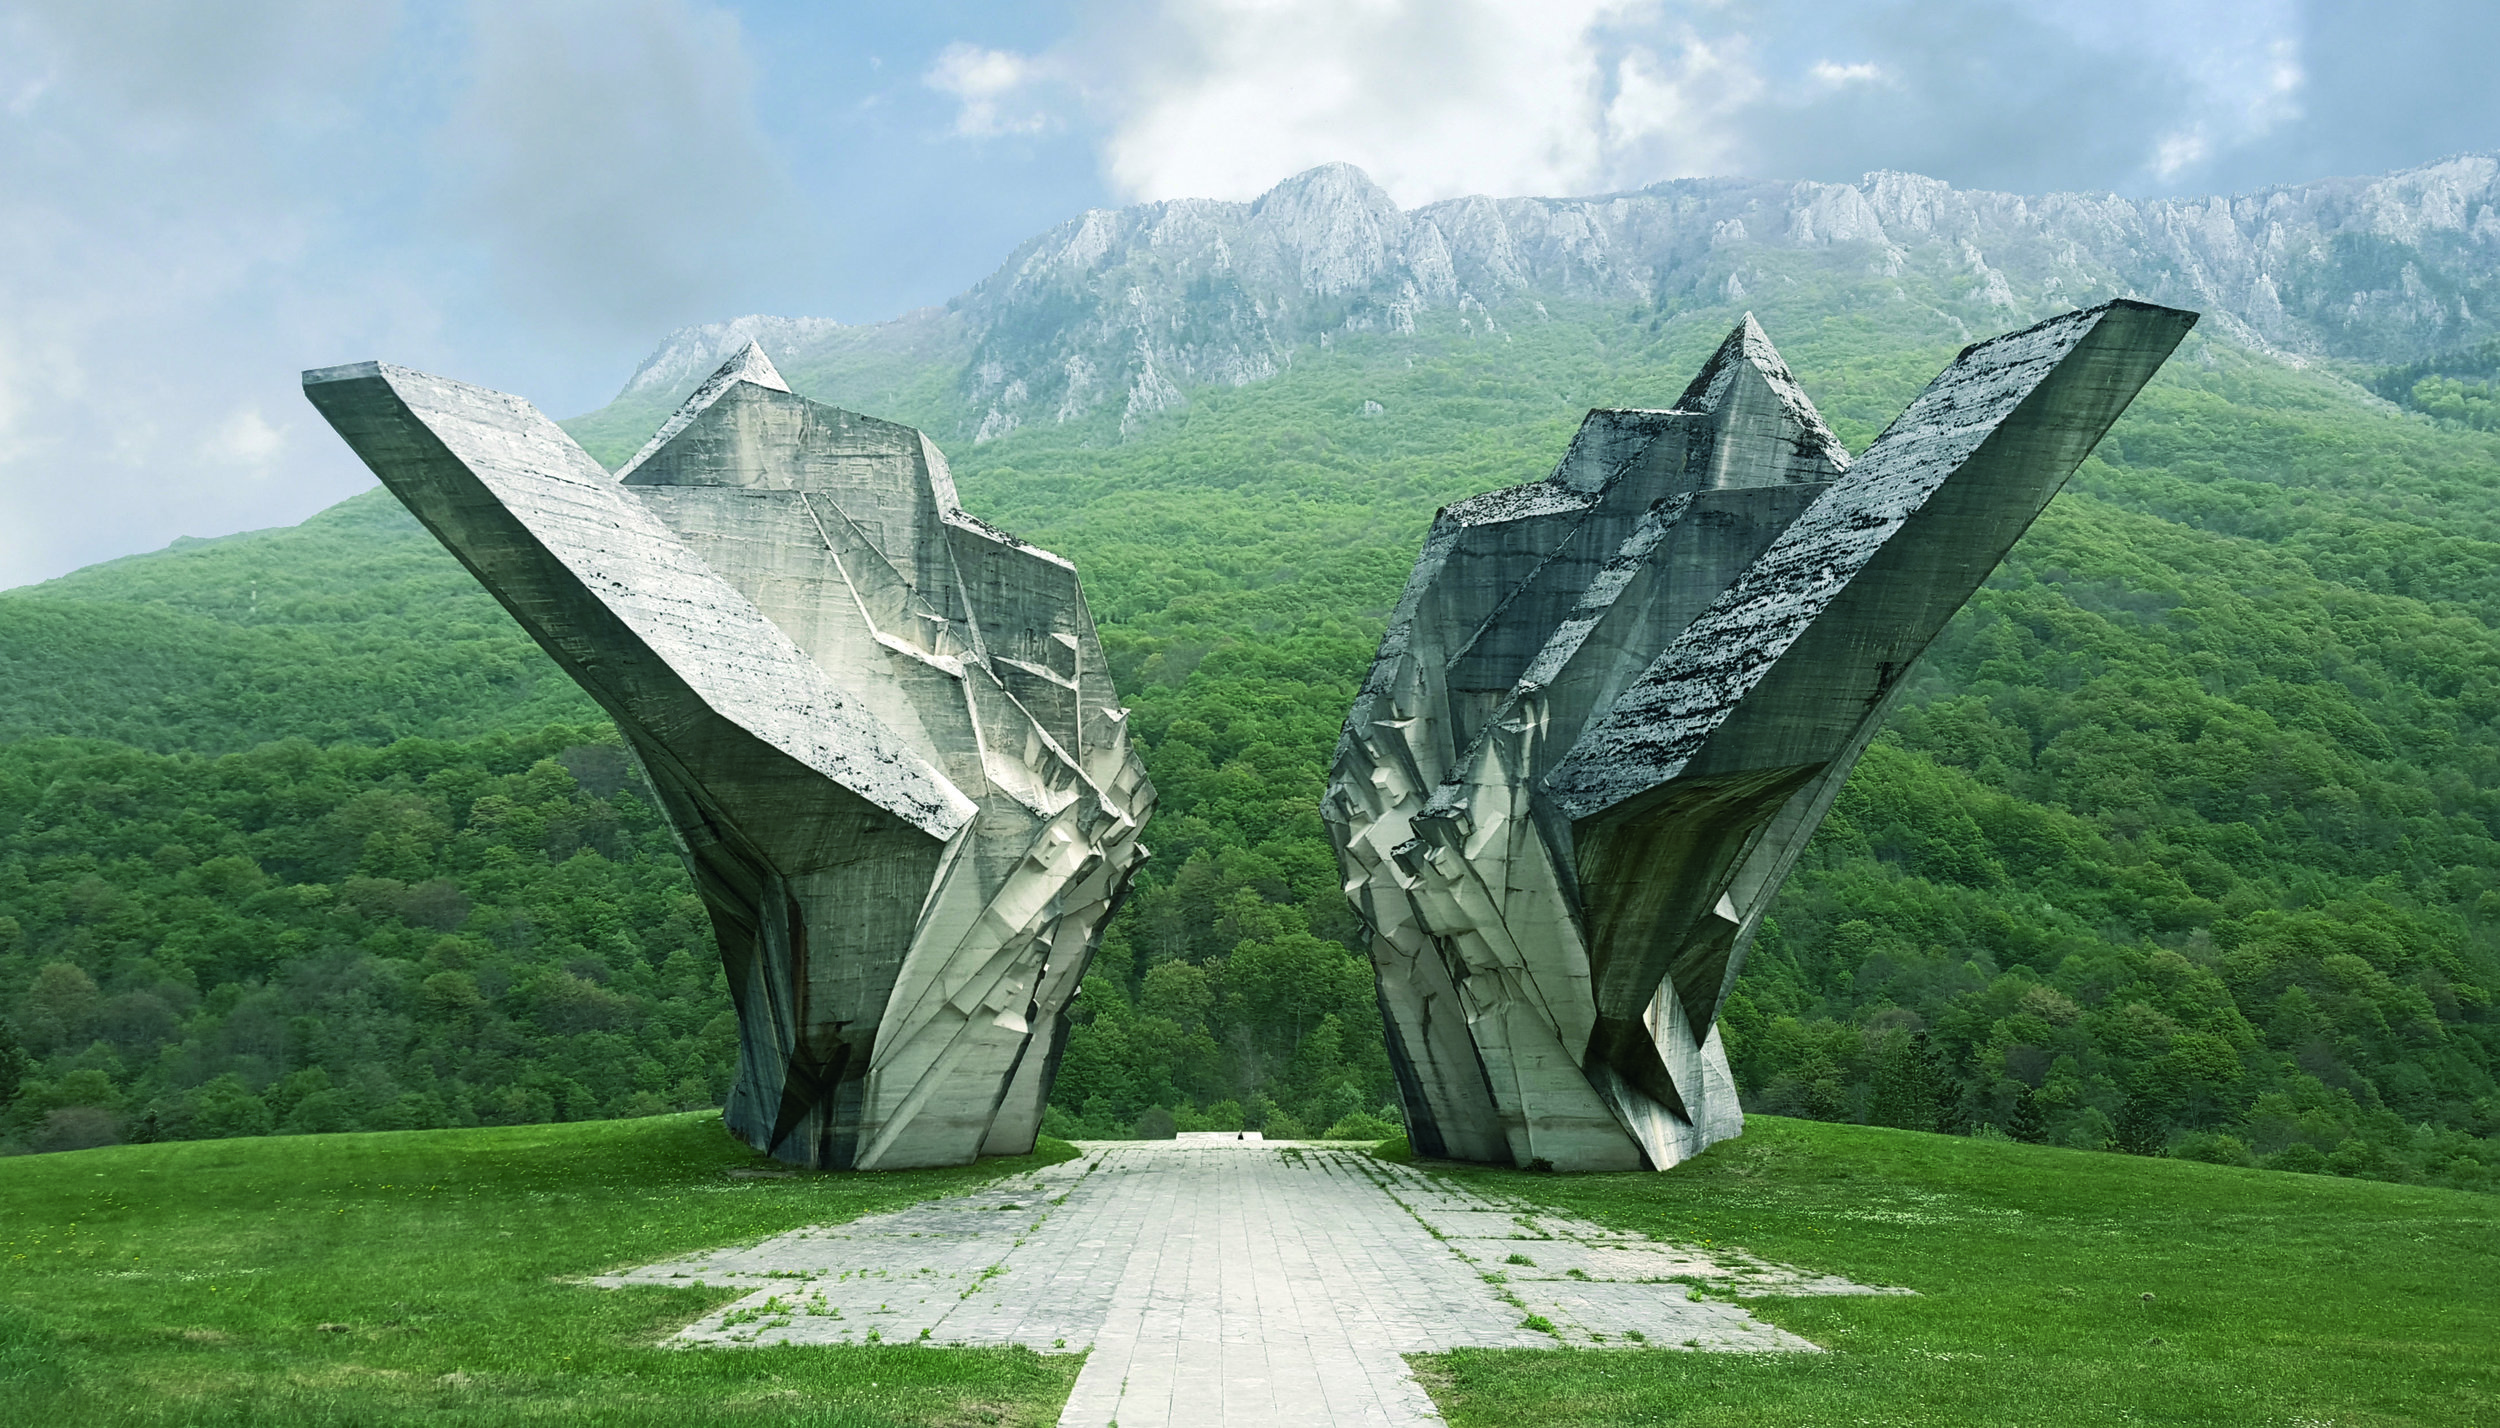 Battle of Sutjeska Memorial Monument Complex in the Valley of Heroes, Tjentište, Republic of Srpska, Bosnia and Herzegovina. Completed 1971. All photos © Donald Niebyl / FUEL Publishing; used with permission.